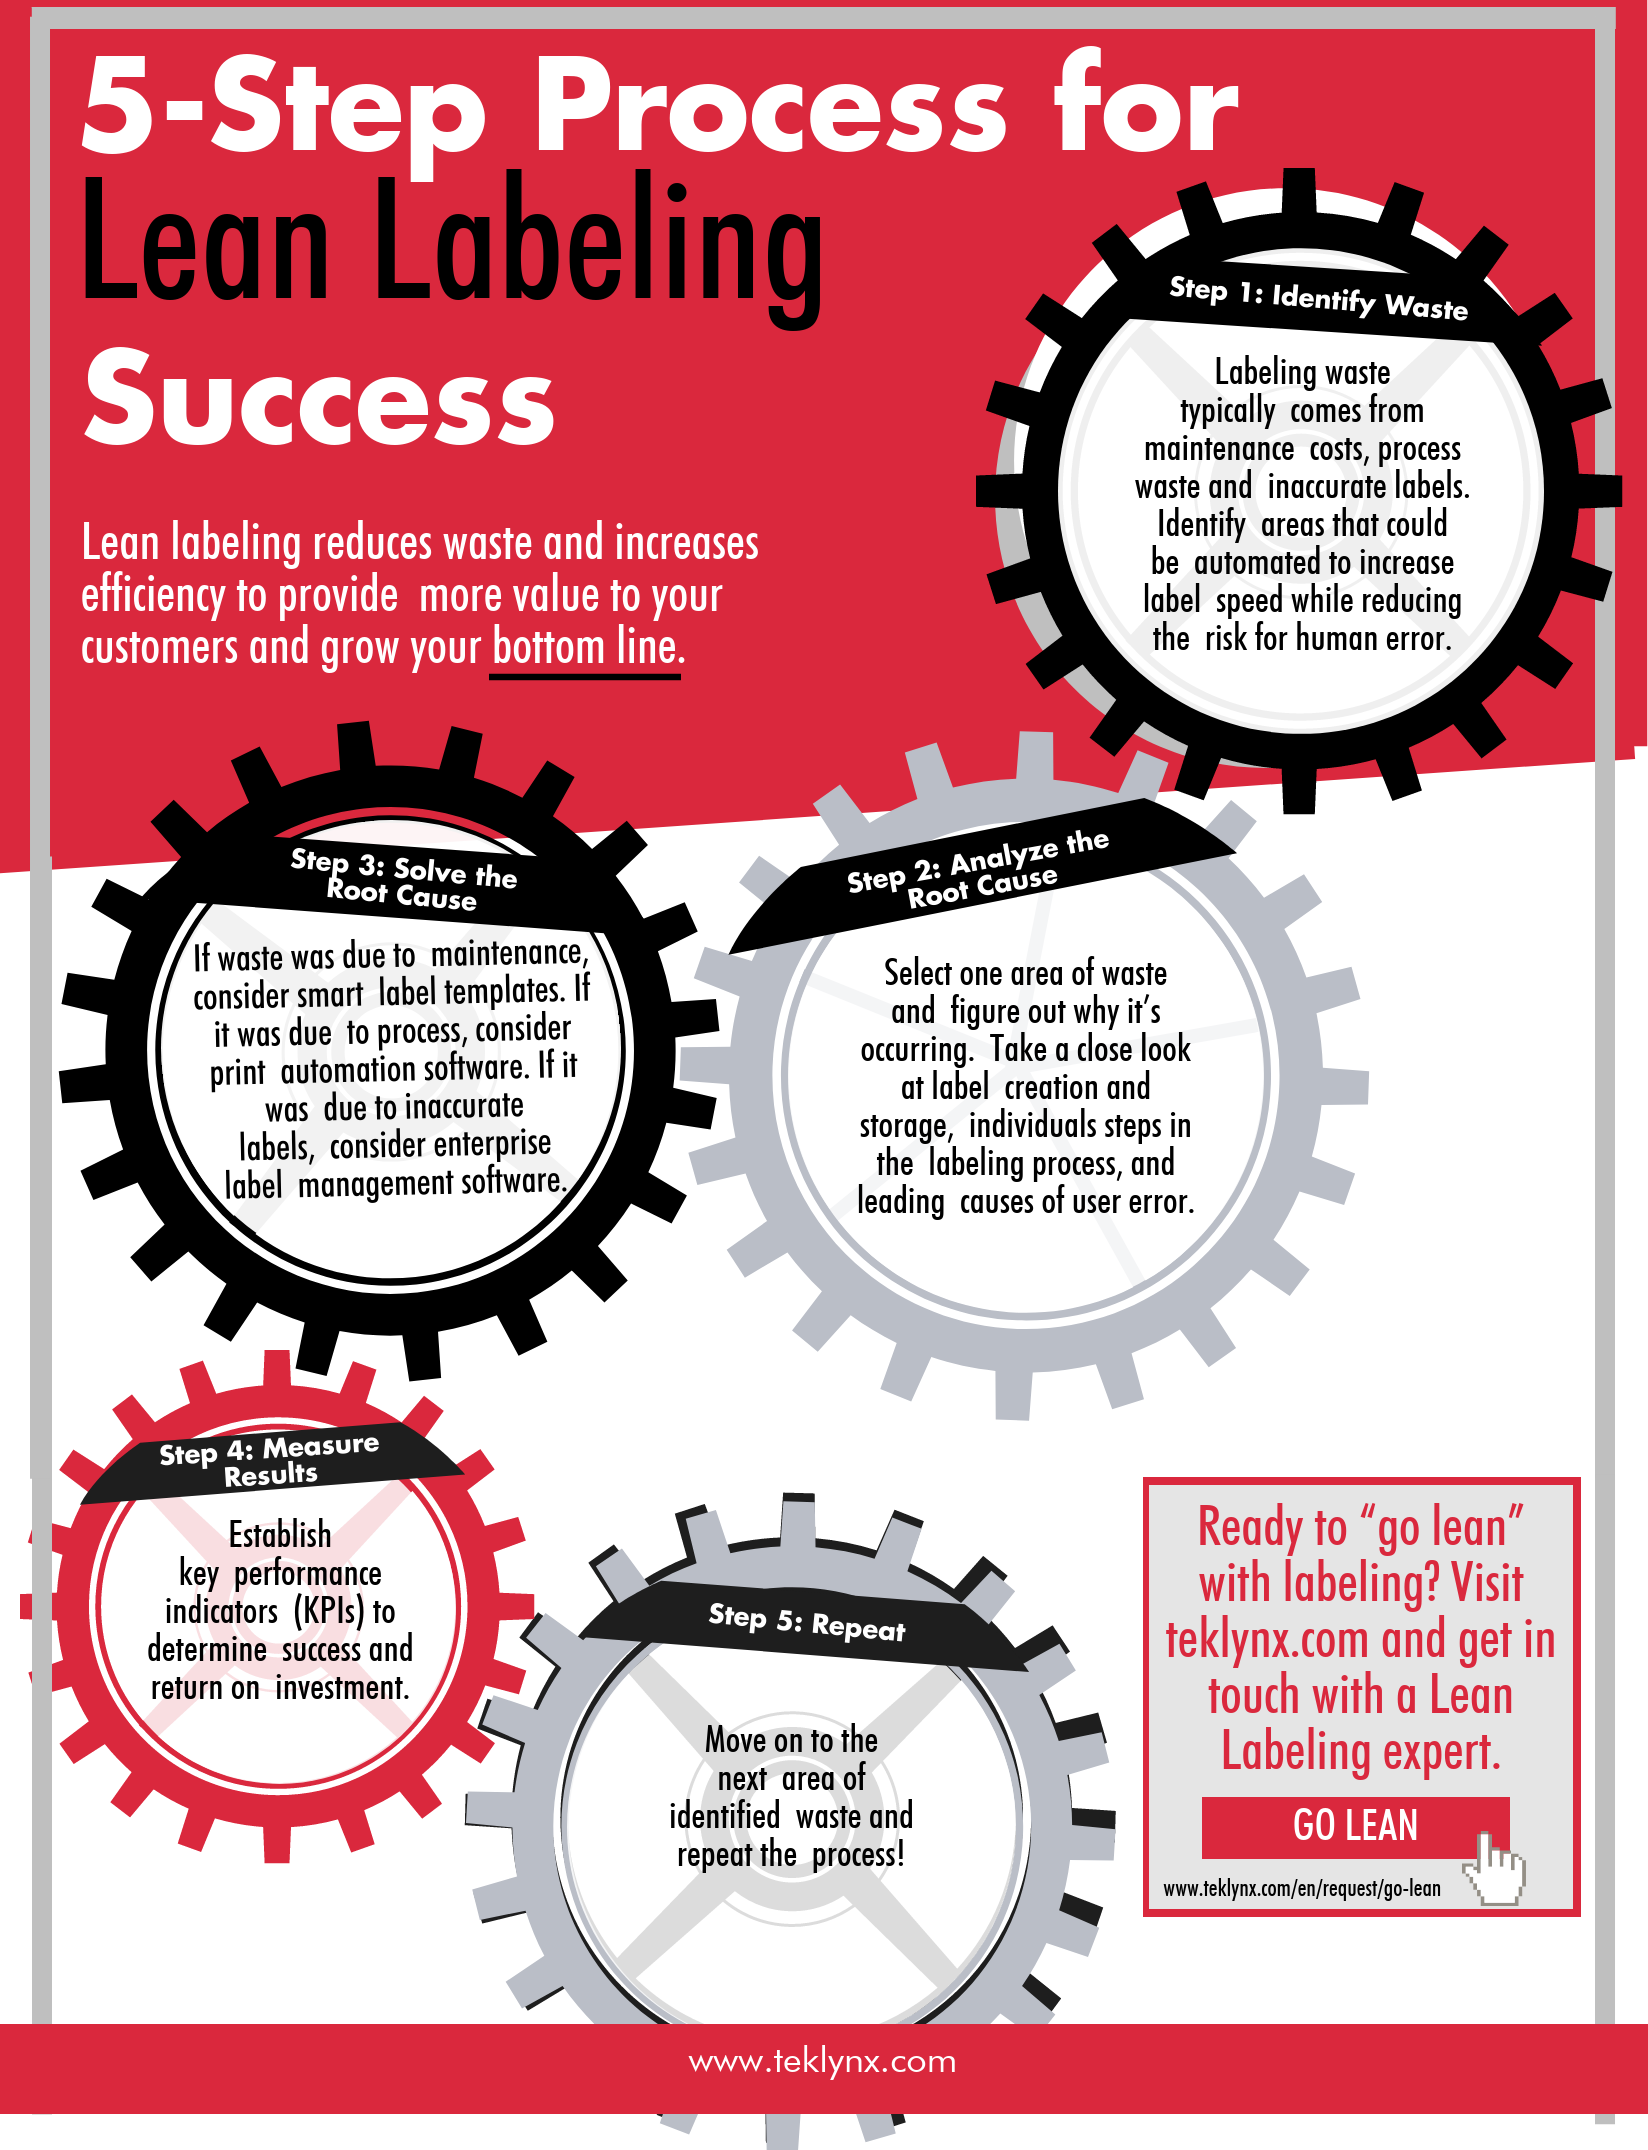 5-Step Process for Lean Labeling Success